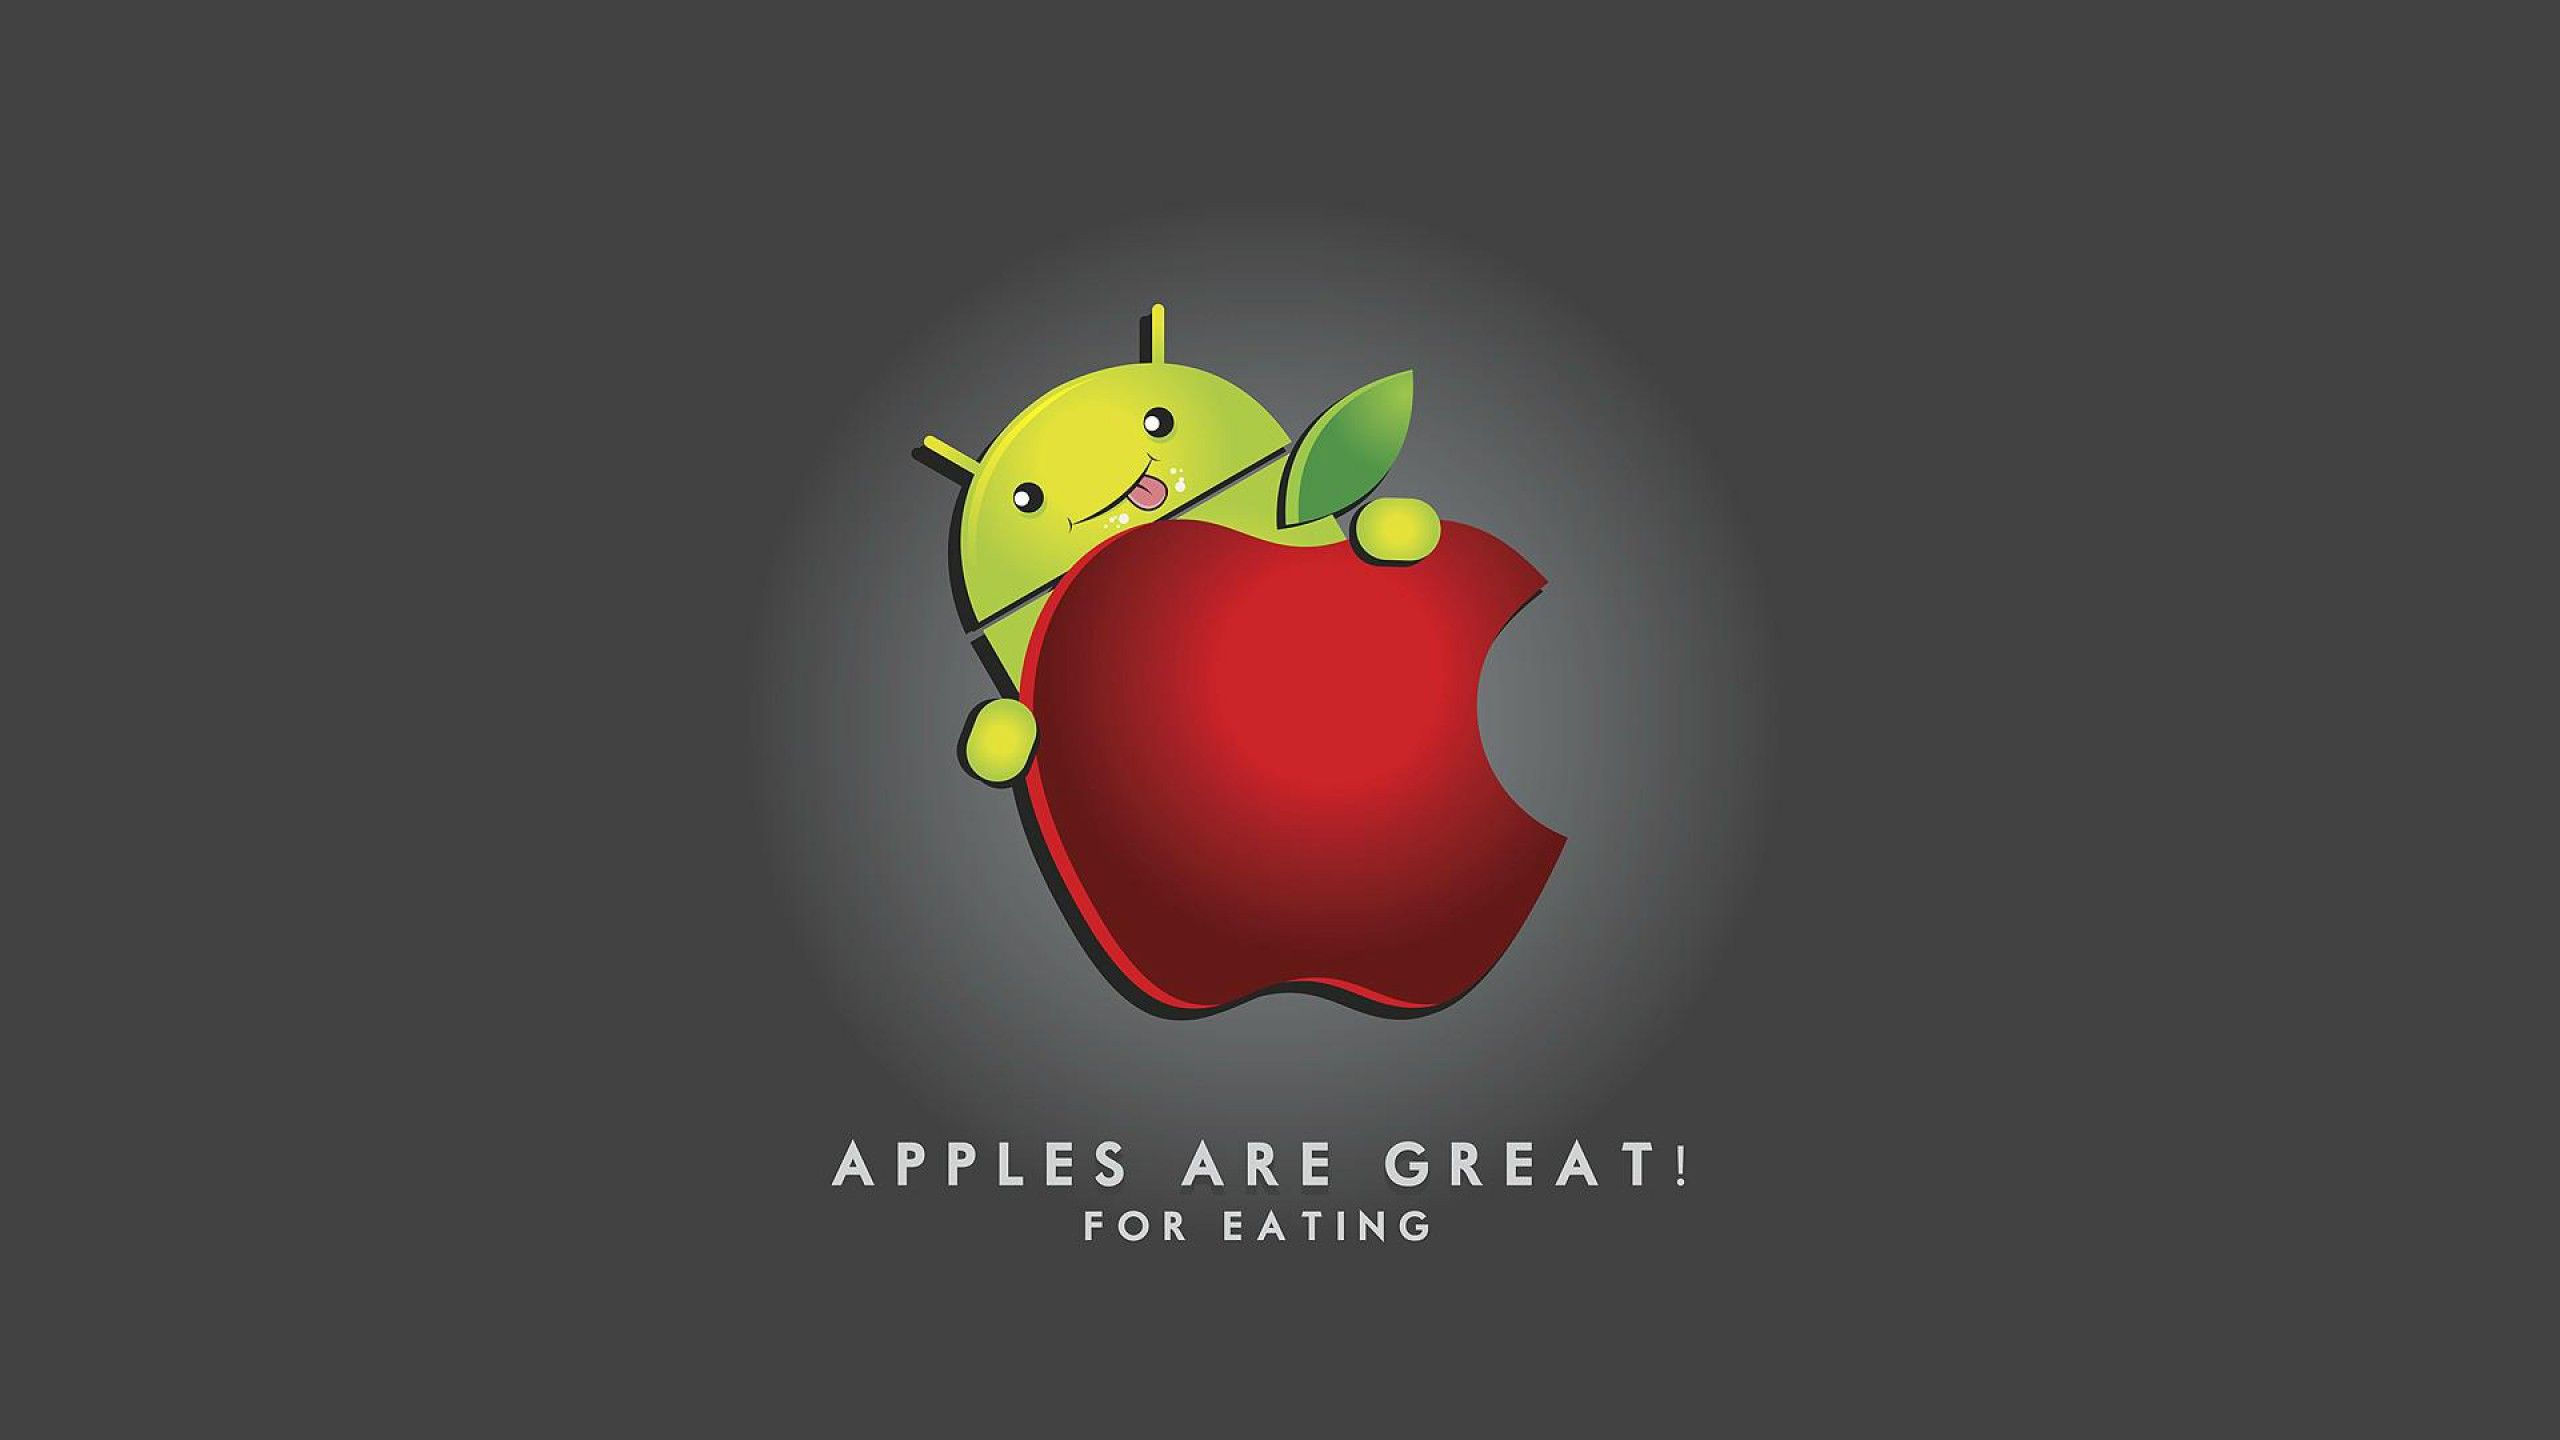 Android Vs Apple Wallpaper 36844 Hd Pictures - Apples Are Great For Eating - HD Wallpaper